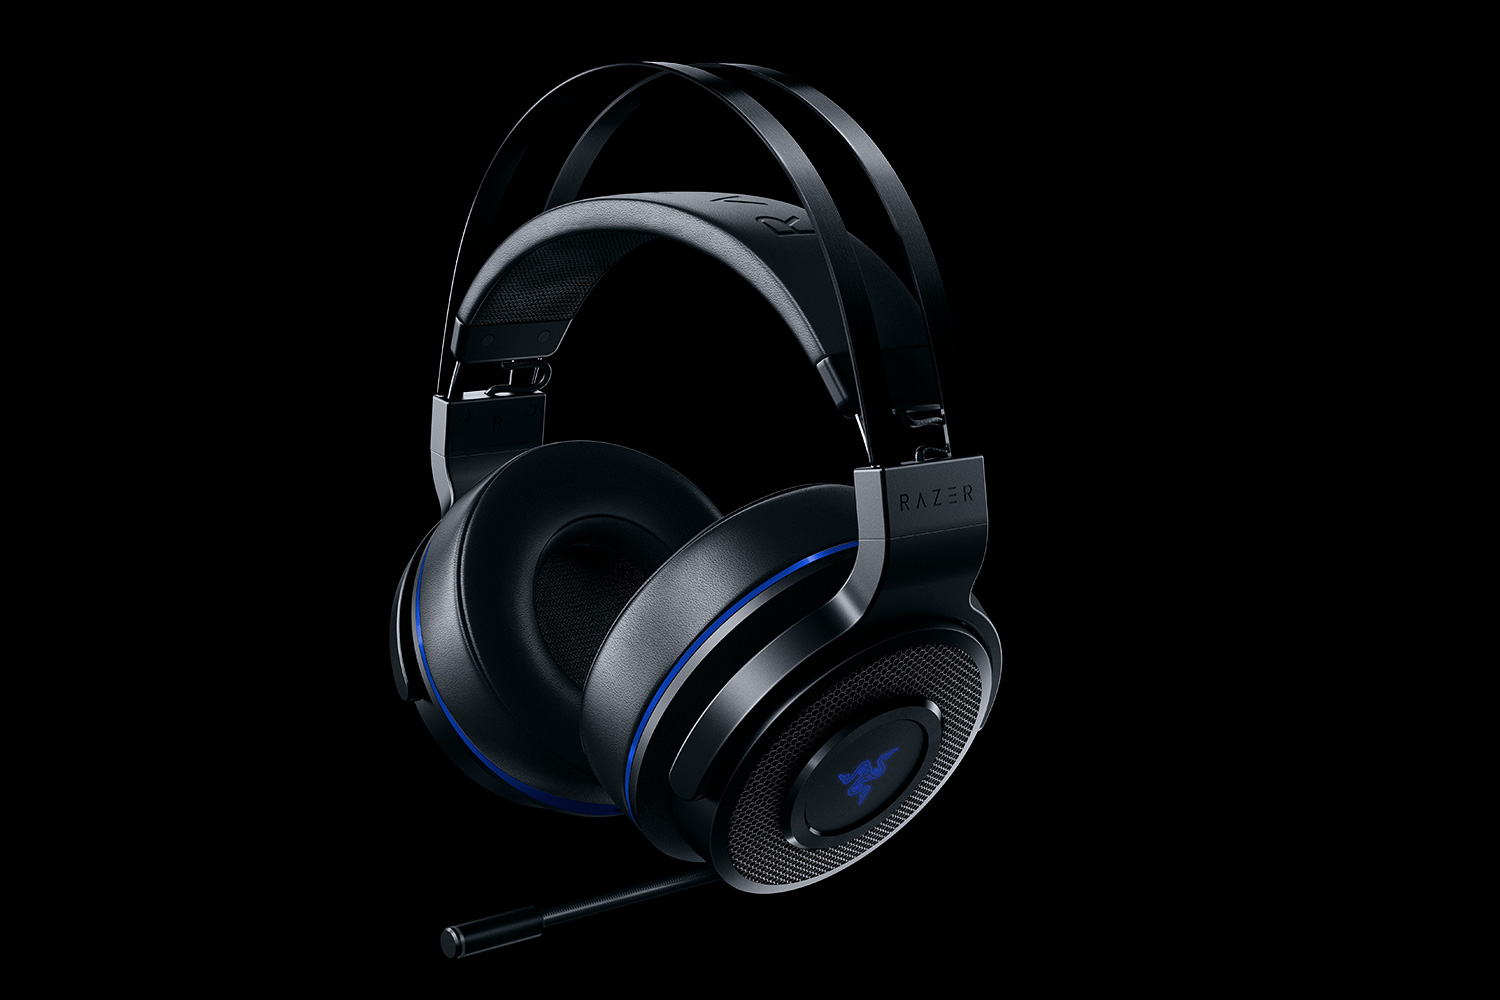 Razer Thresher Ultimate For Ps4 Wireless Gaming Headset